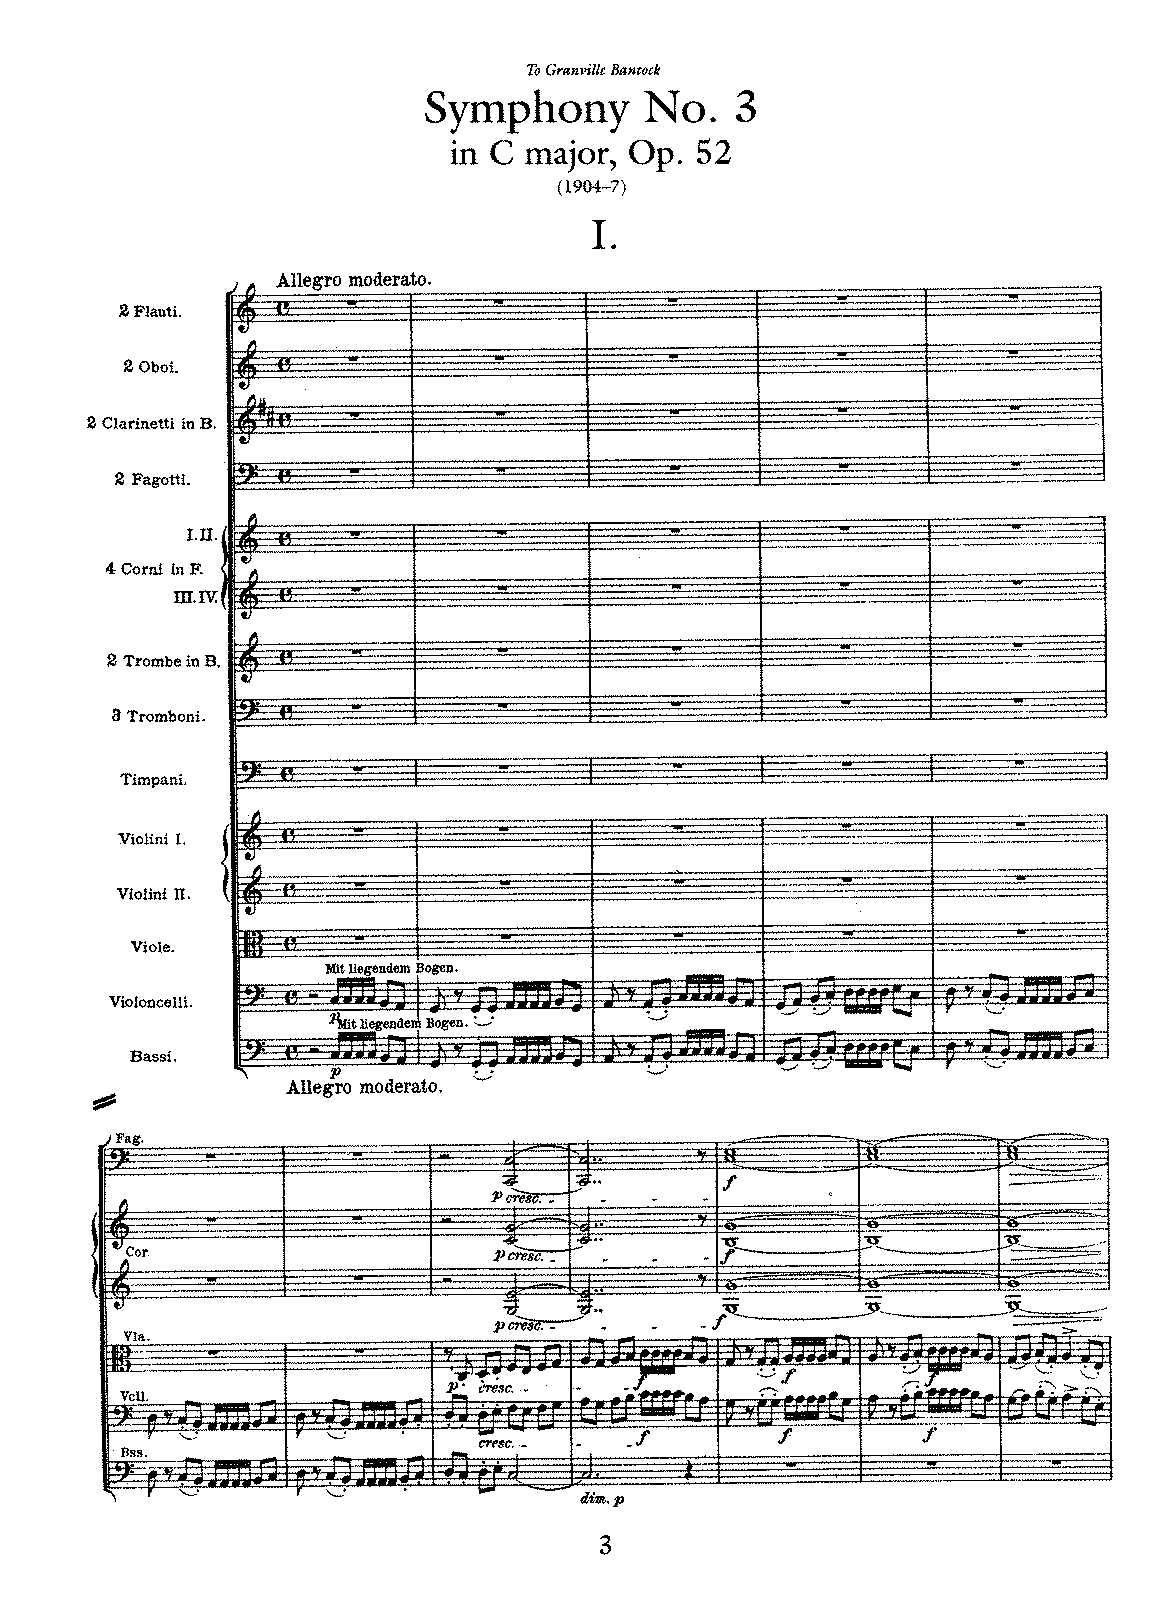 MUSIClassical notes: Sibelius symphony no 3 in C Op 52